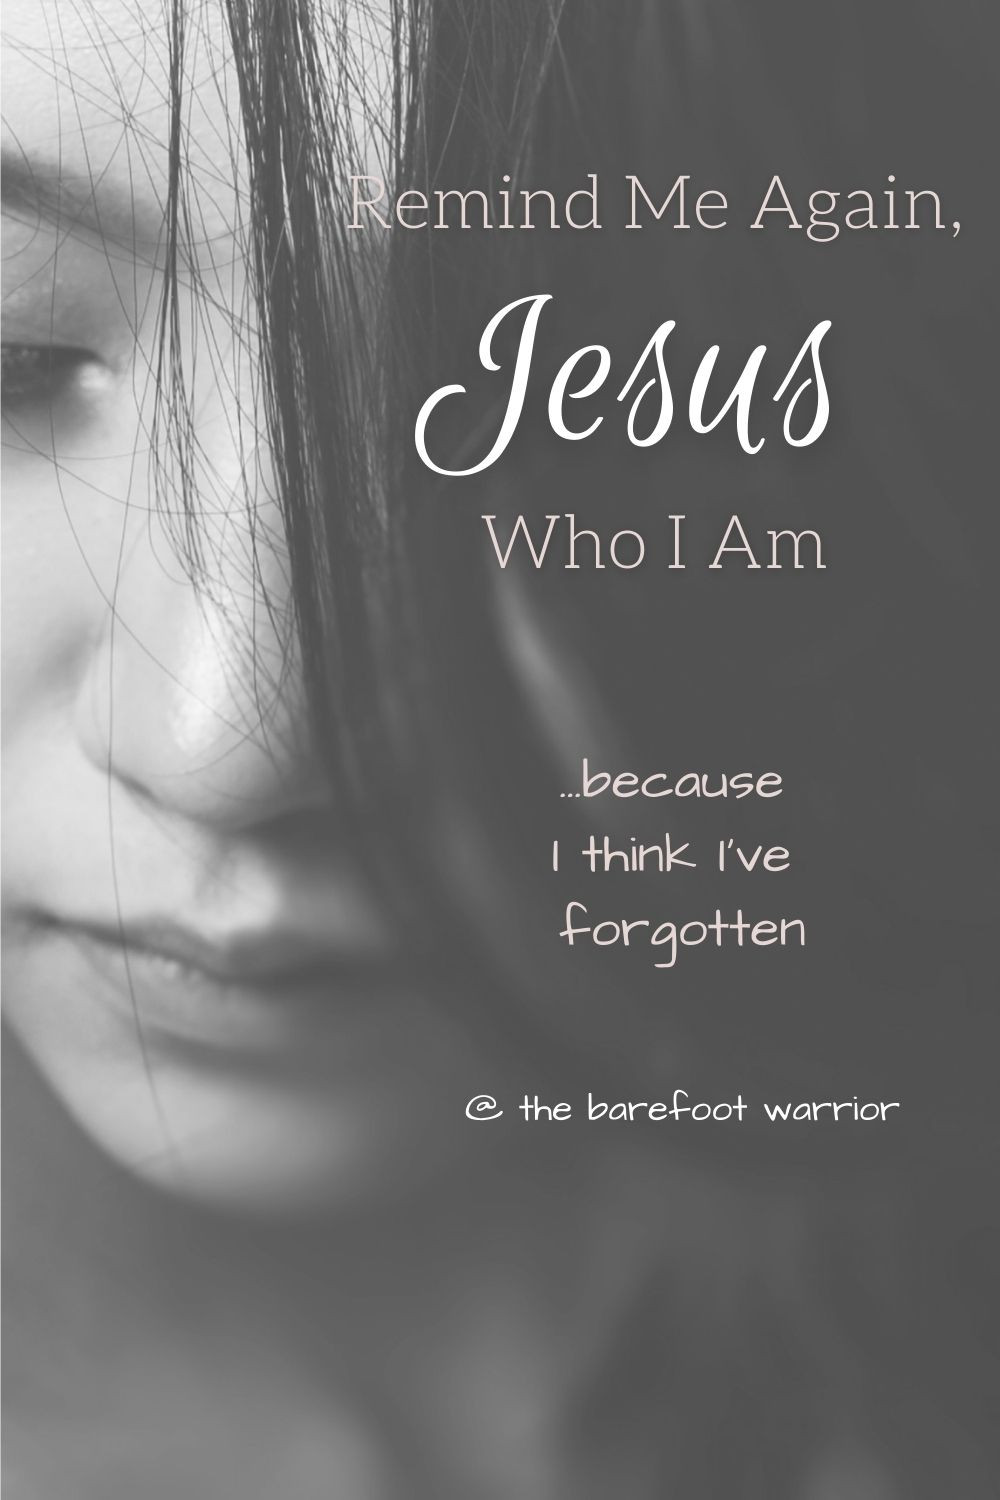 Who Am I in Jesus?